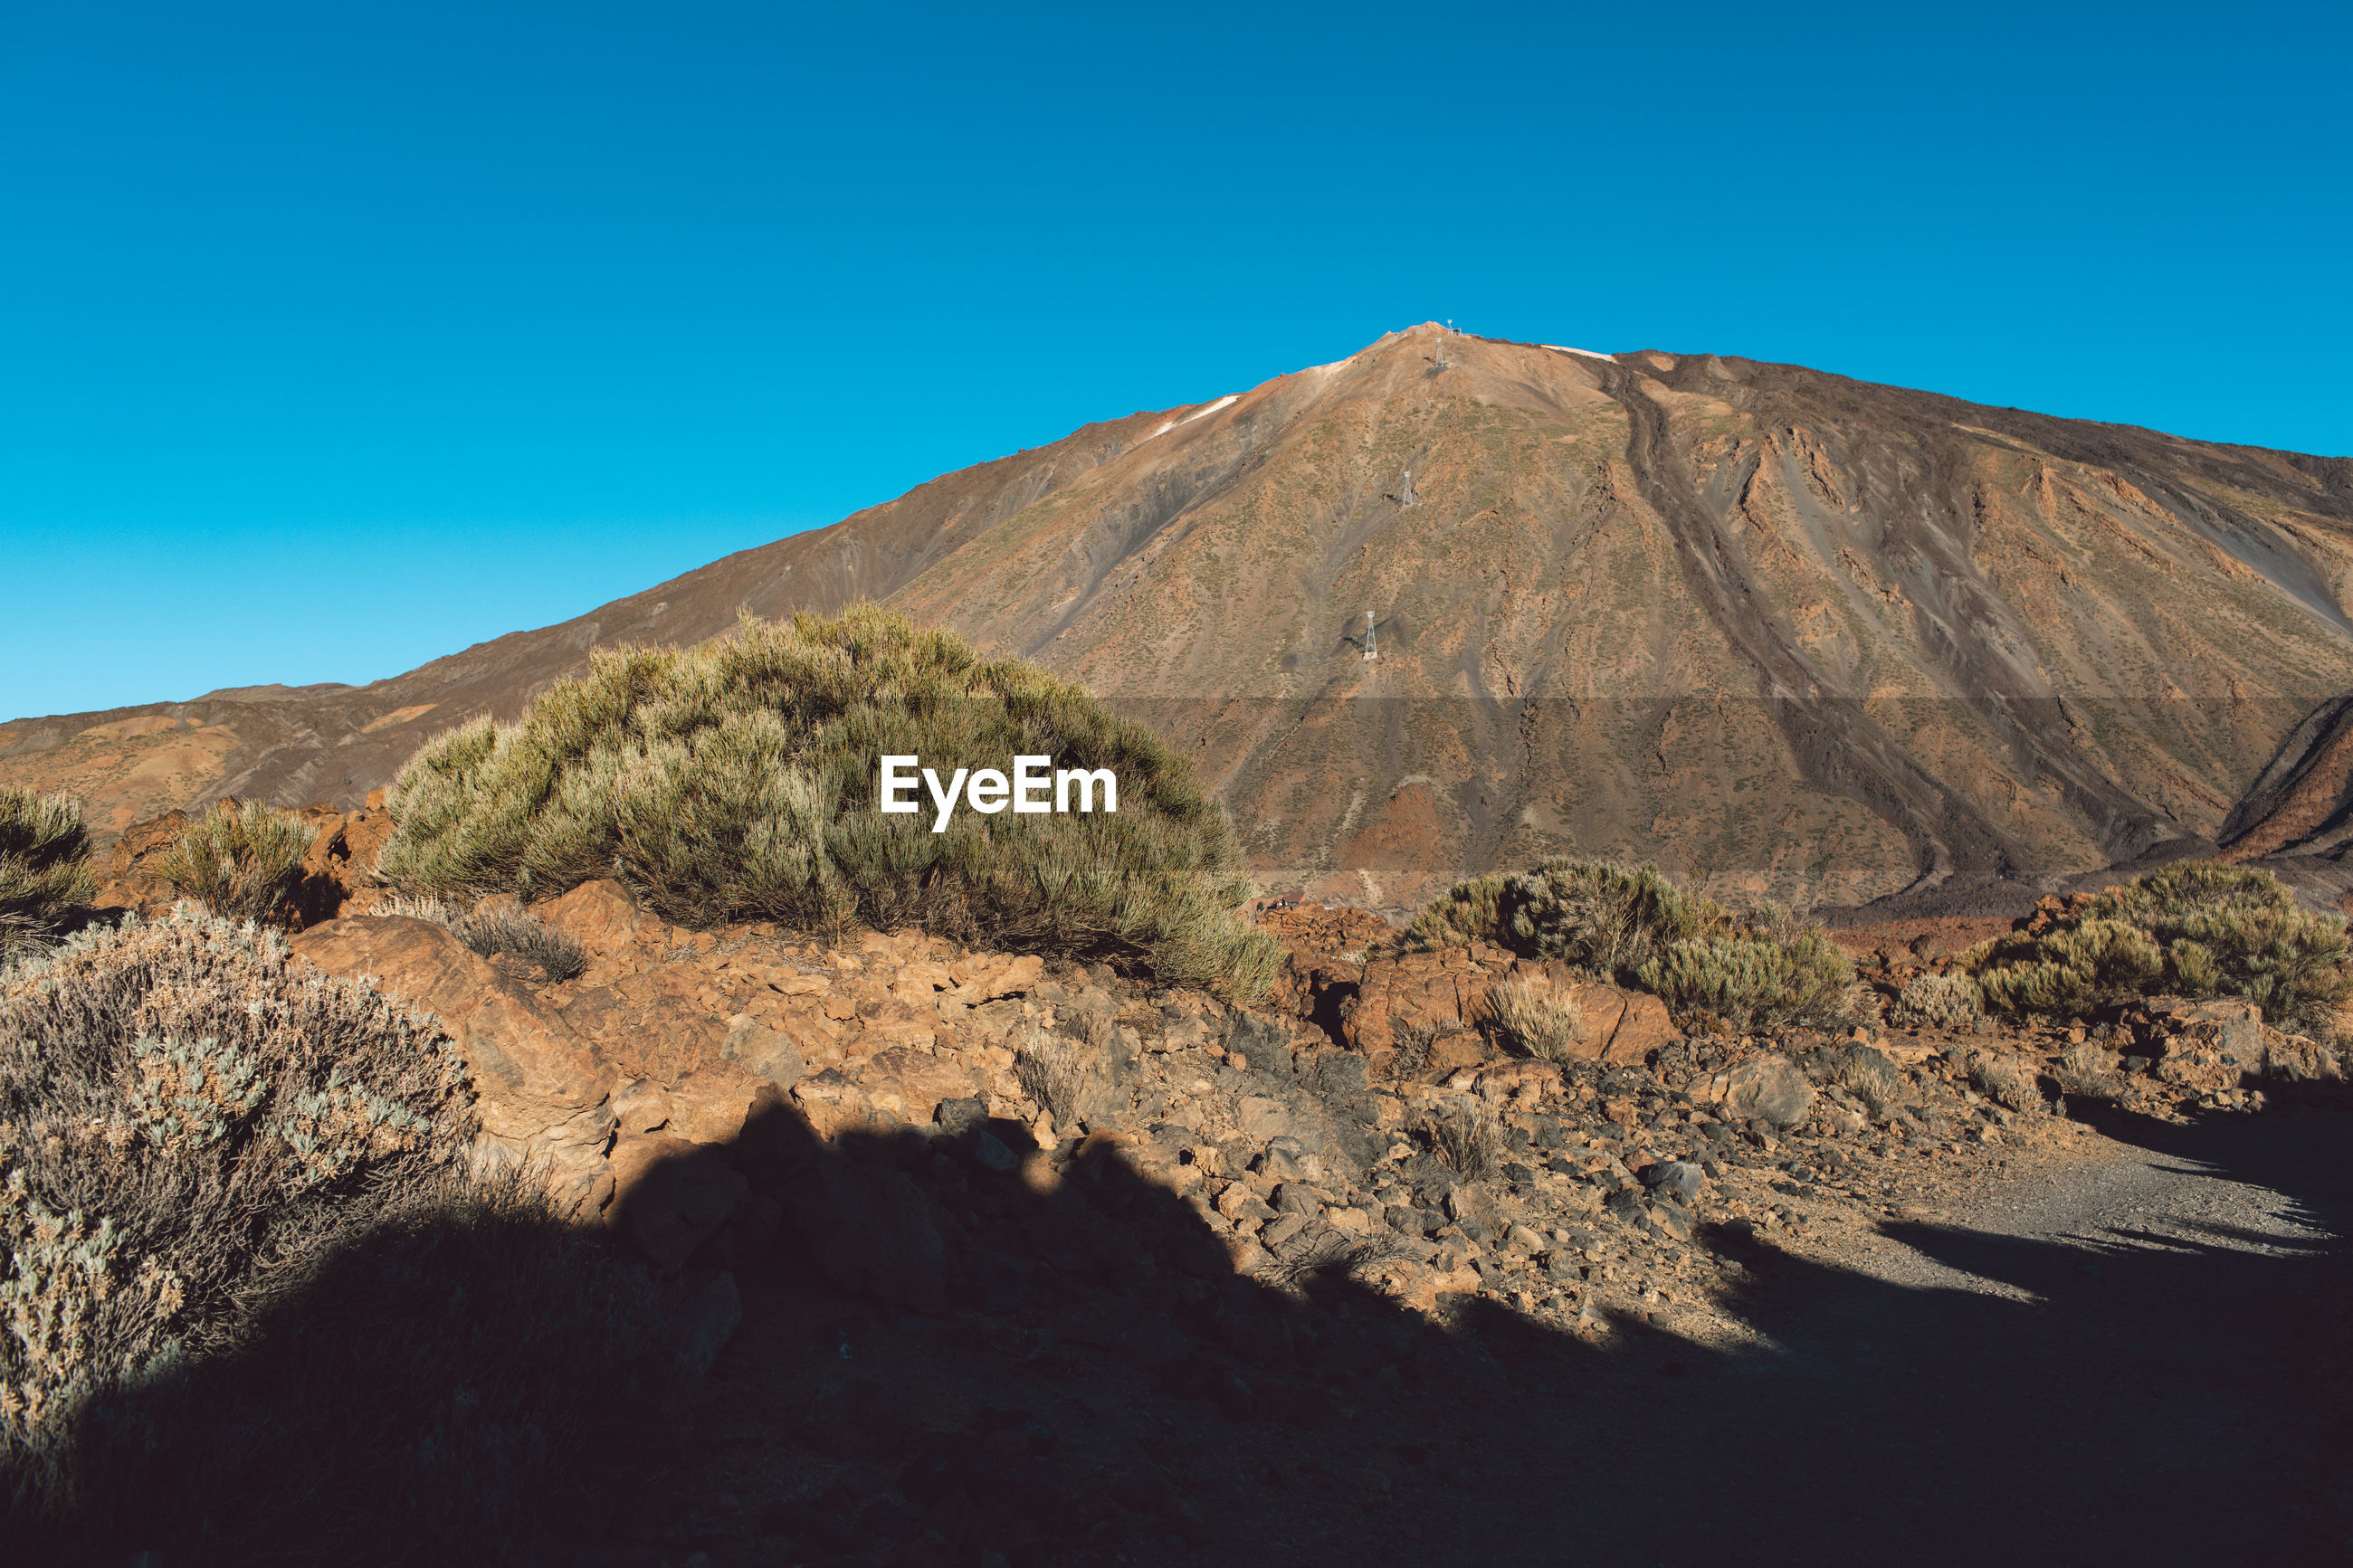 SCENIC VIEW OF VOLCANIC MOUNTAIN AGAINST BLUE SKY